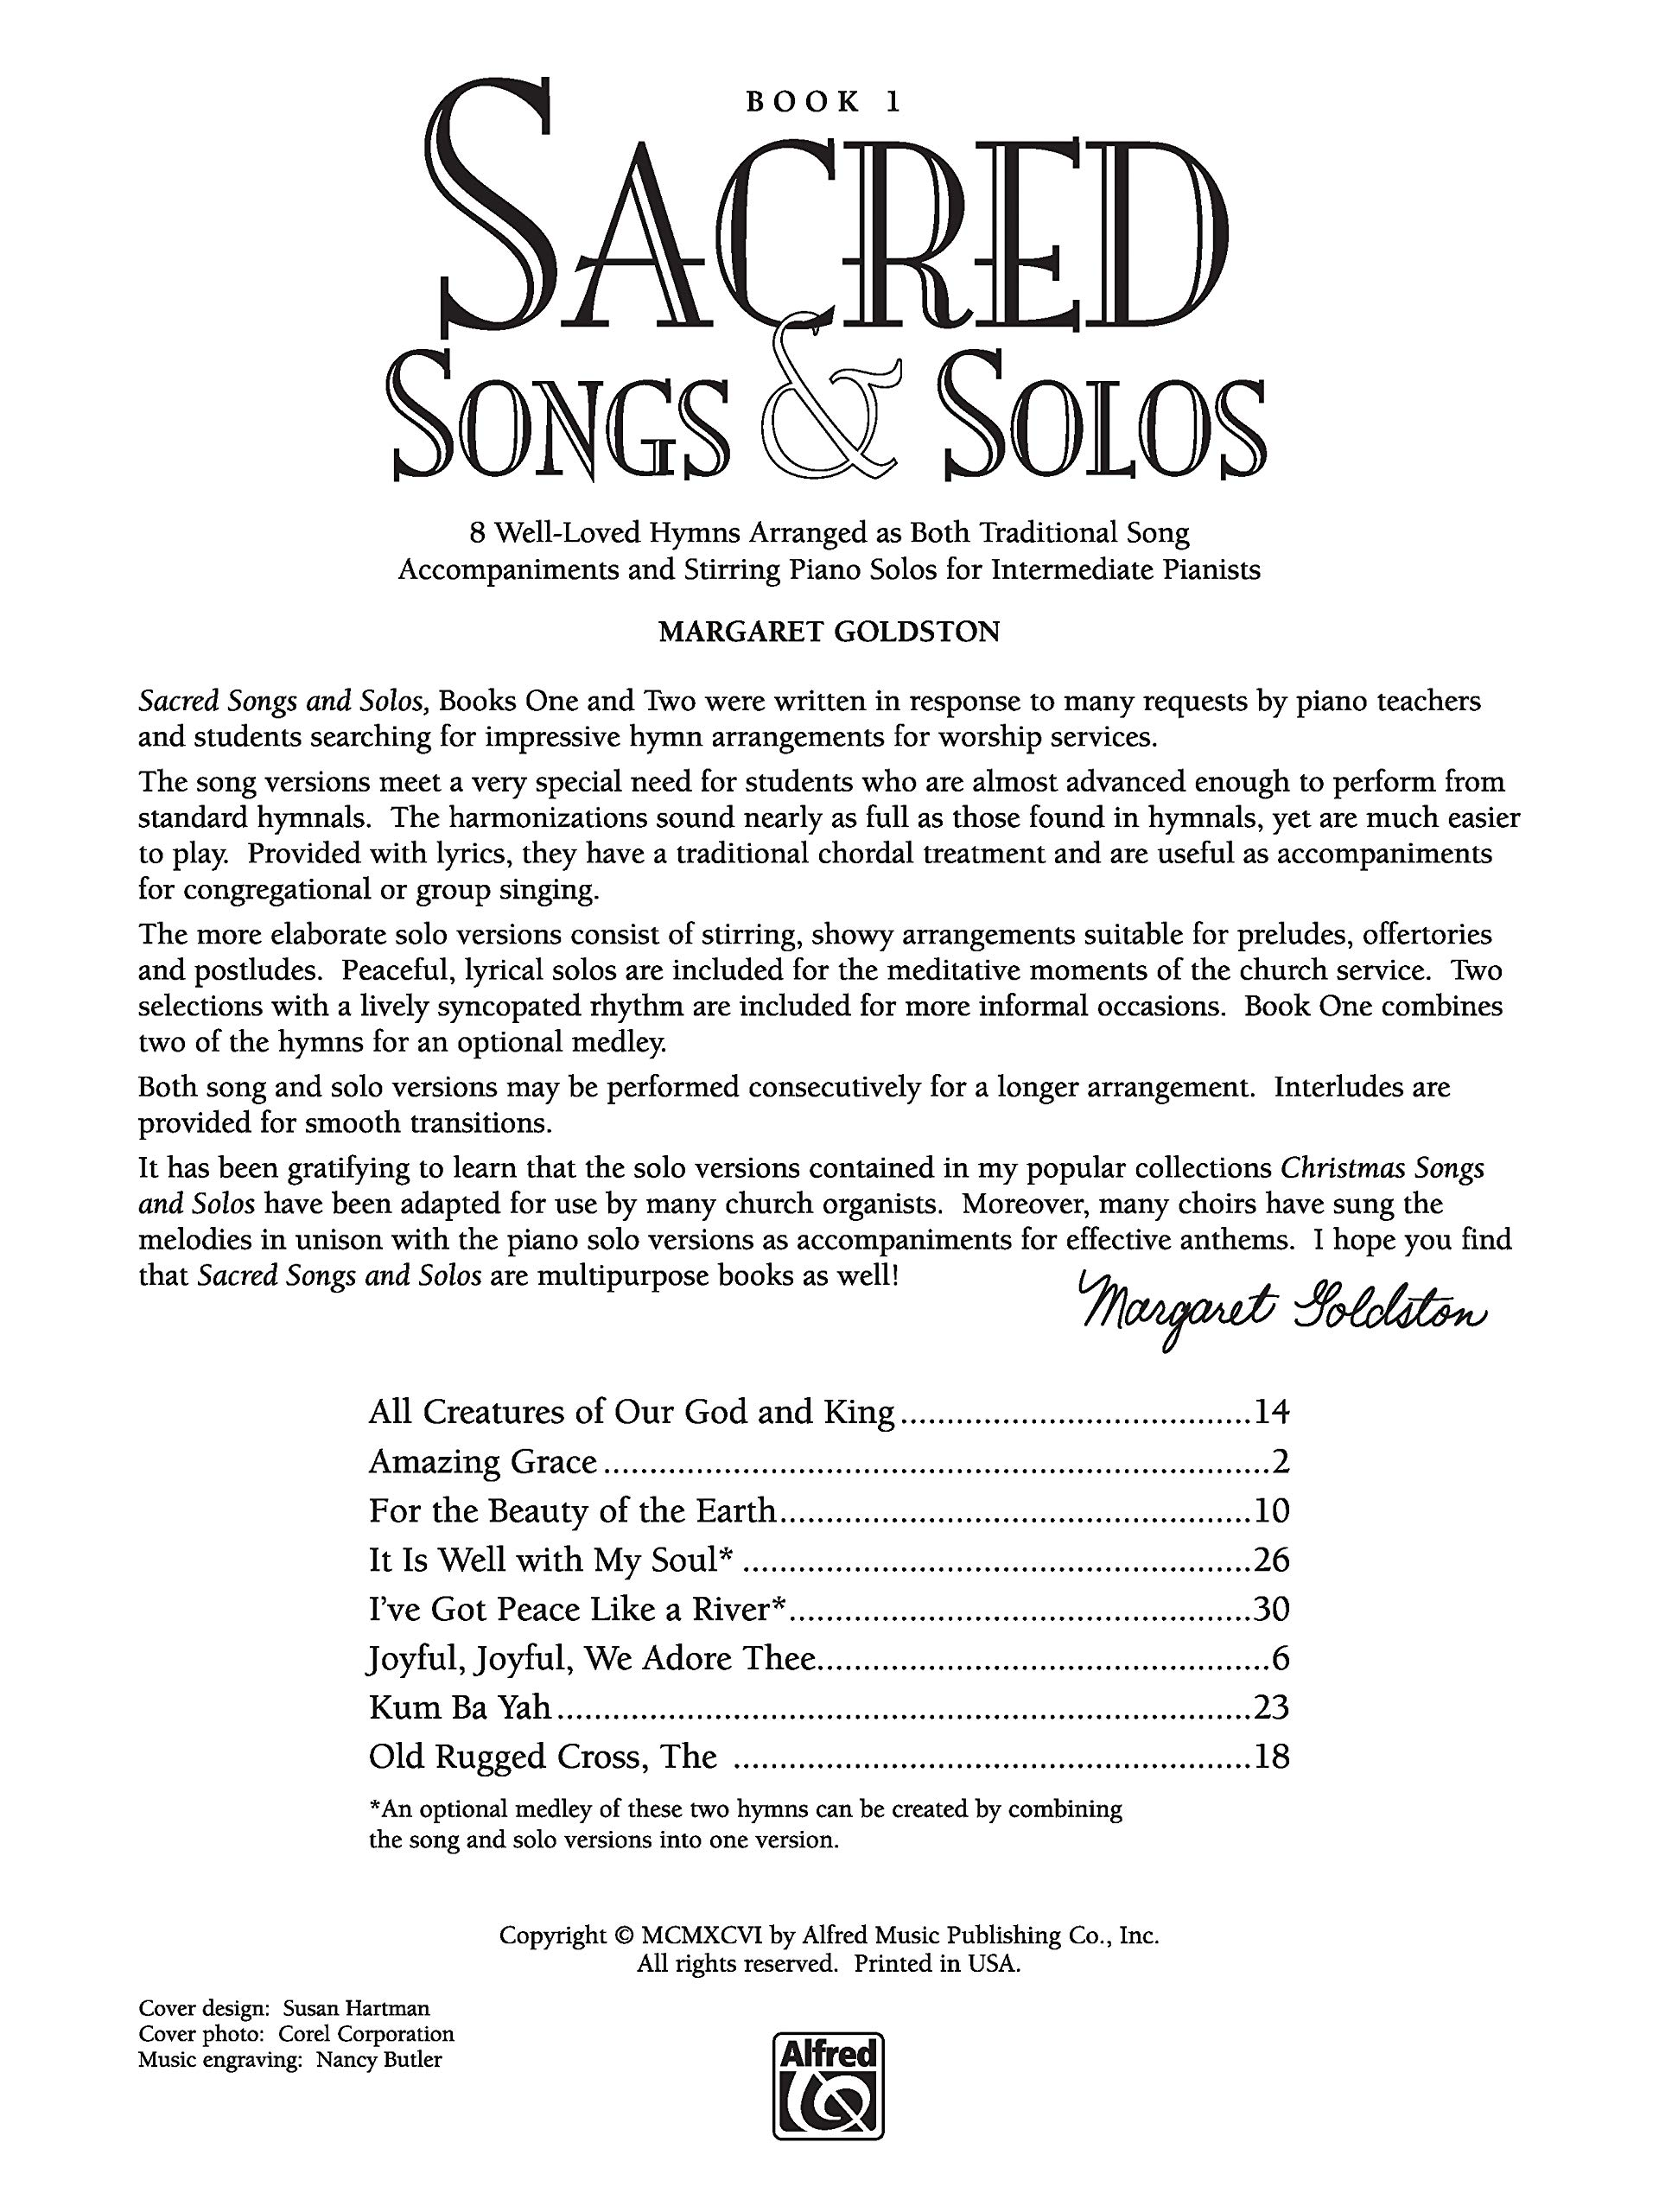 Sacred Songs Solos Bk 1 8 Well Loved Hymns Arranged As Both Traditional Song Accompaniments And Stirring Piano Solos For Intermediate Pianists Goldston Margaret 9780739020203 Amazon Com Books